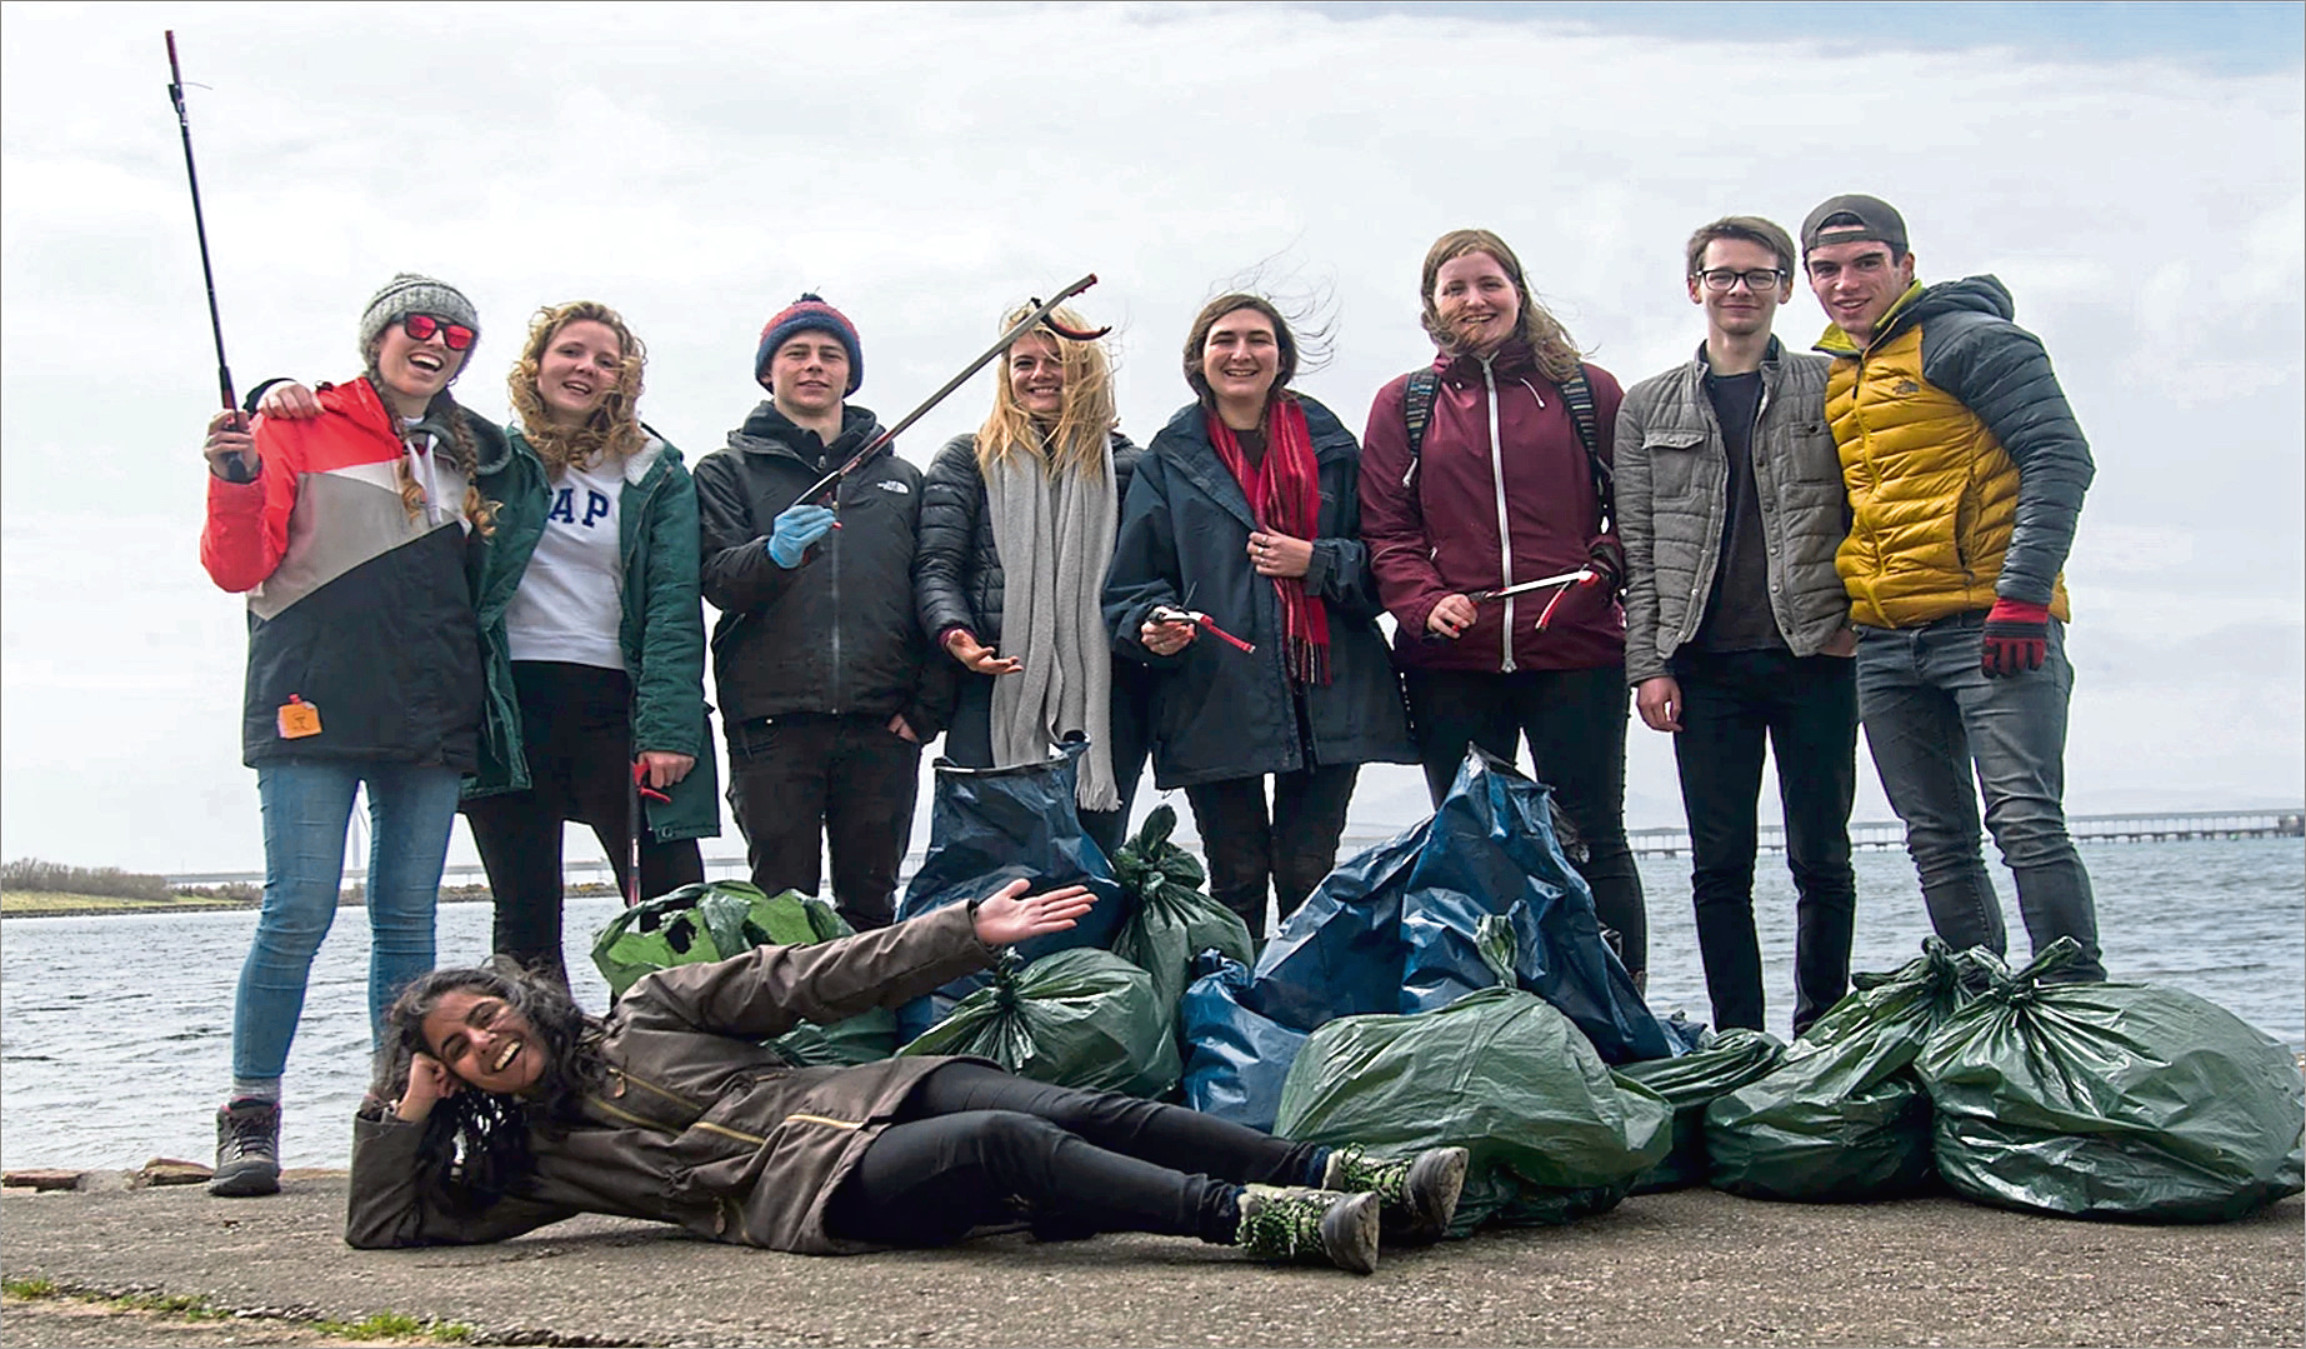 EMBARGOED: NOT FOR PUBLICATION OR BROADCAST UNTIL 00:01HRS MONDAY 4 JUNE 2018 GLASGOW STUDENTS PREPARE TO DIVE INTO RESEARCH IN SRI LANKA  An interdisciplinary team of 10 geography, biology and zoology students from the University of Glasgow, UK, leaves today (Monday, 4 June 2018) for Trincomalee, Sri Lanka, to help advance marine and coastal research in the country and educate Sri Lankan children about environmental conservation.